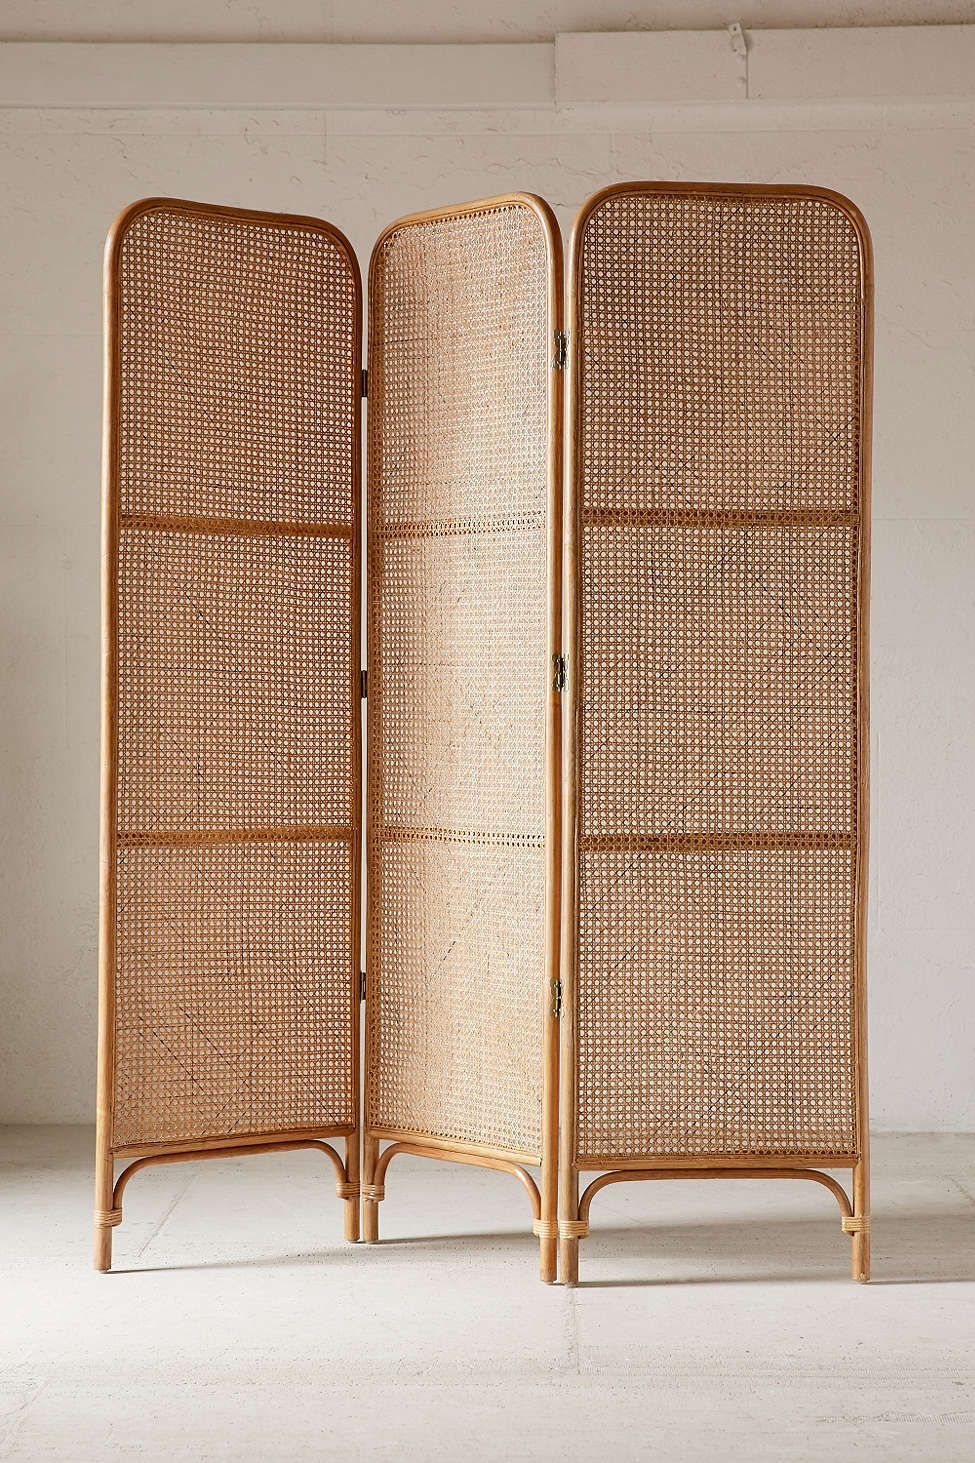 Rattan Screen Room Divider | *In the Bedroom* | Home Decor ...